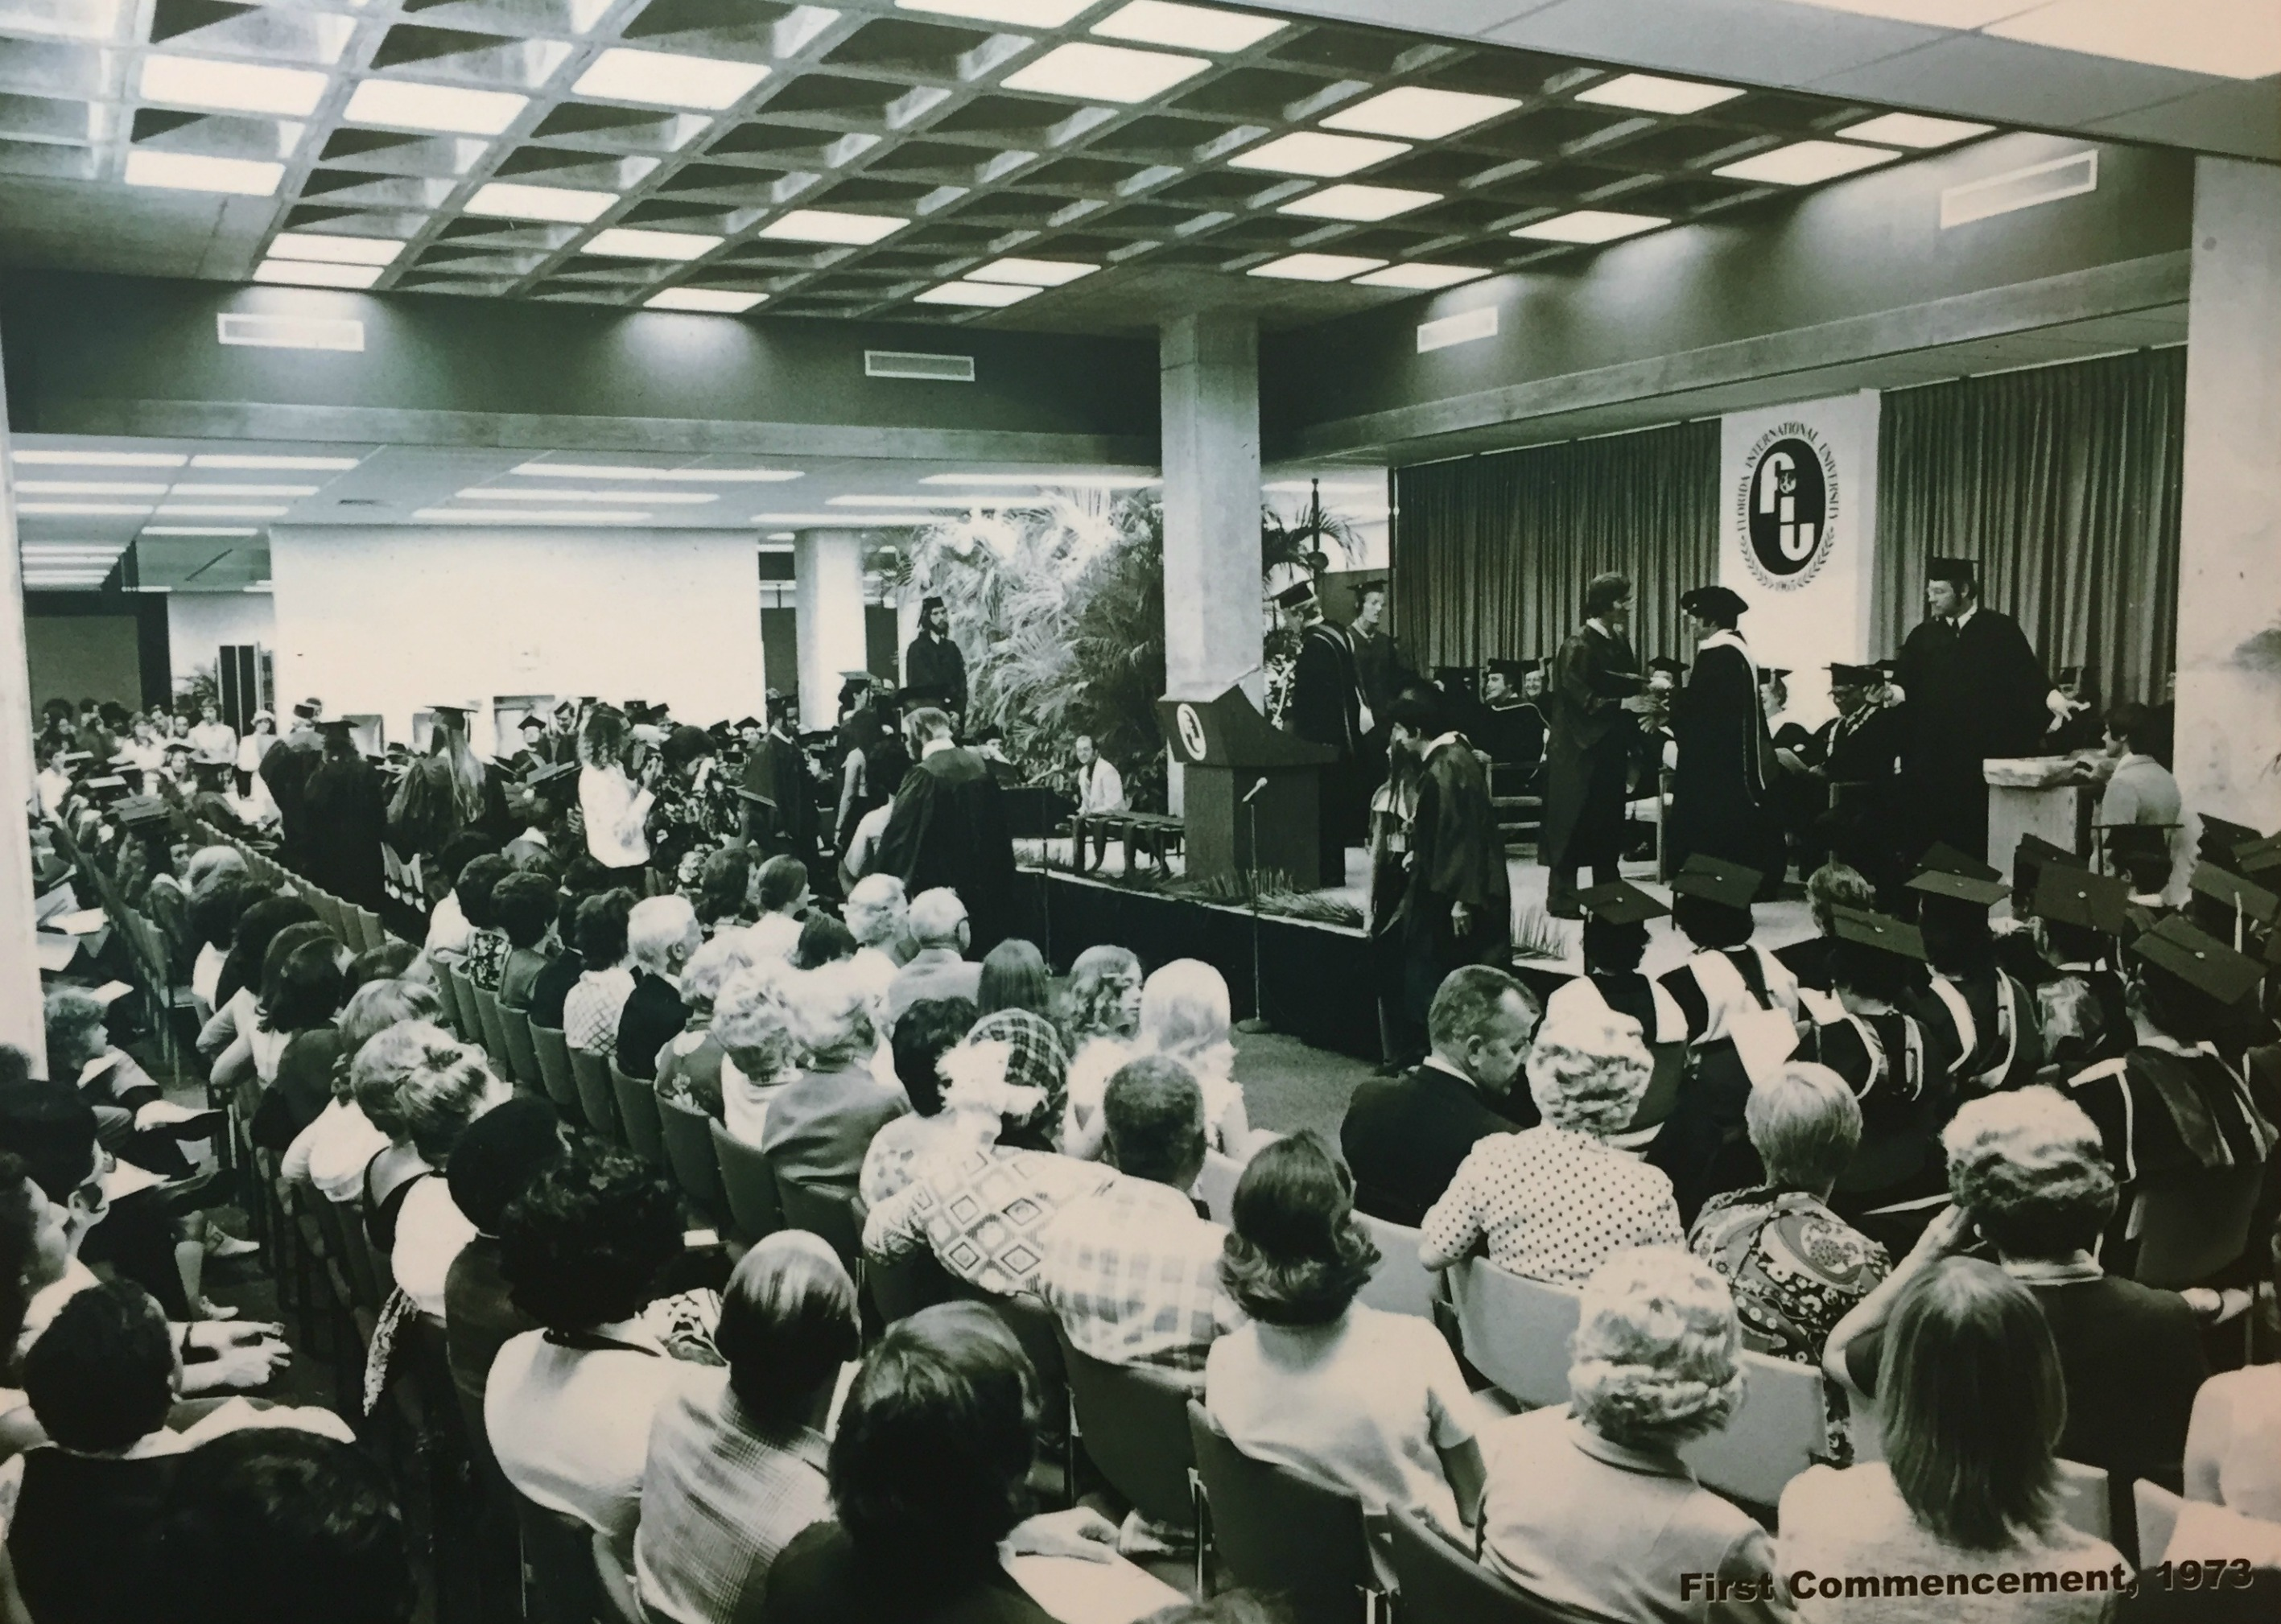 FIU used the first floor of Primera Casa, then housing the library, to hold the first commencement ceremony.